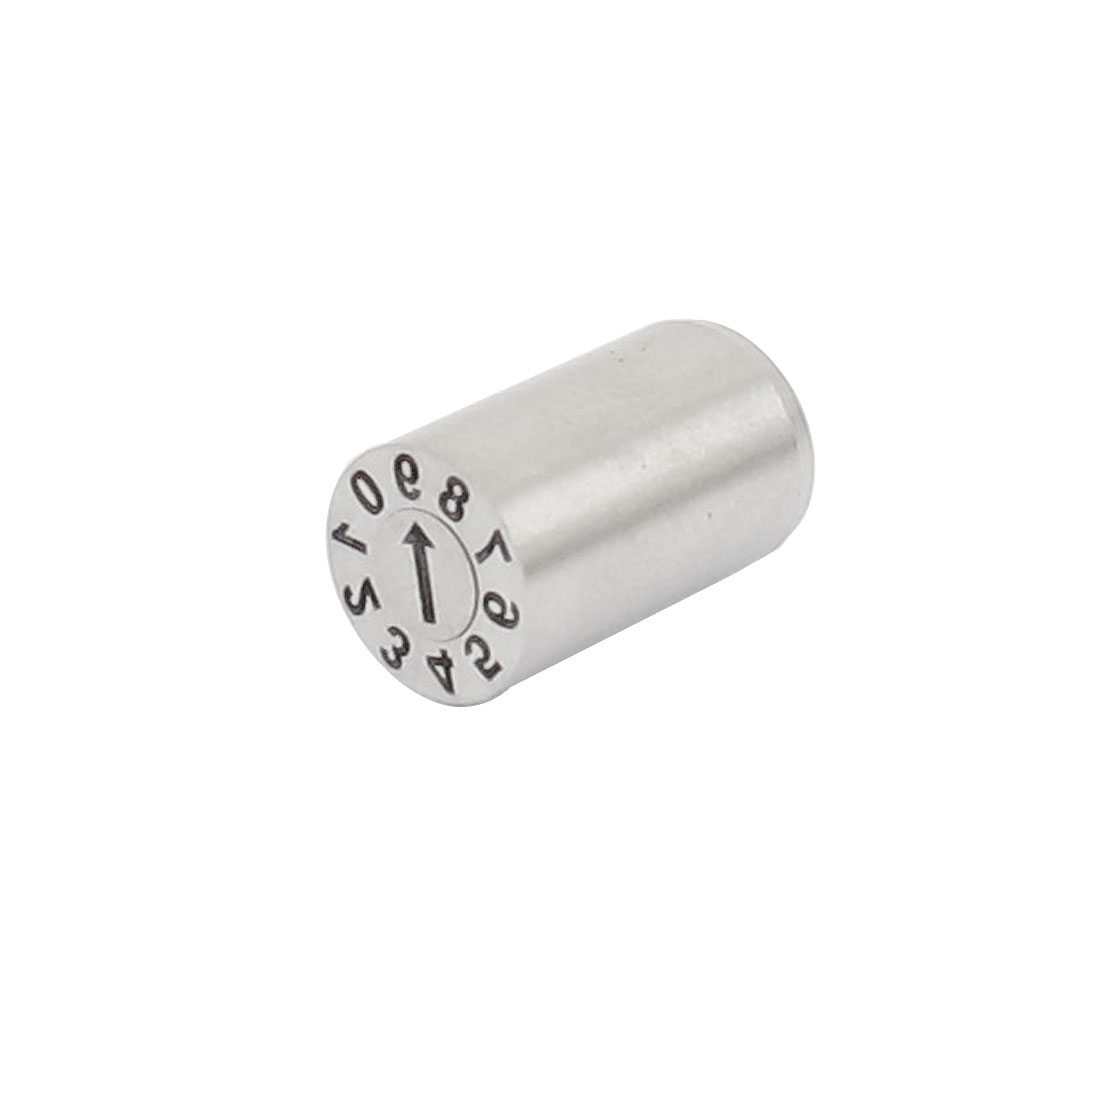 Stainless Steel Mold Date Stamp Inserts Silver Tone 6mm